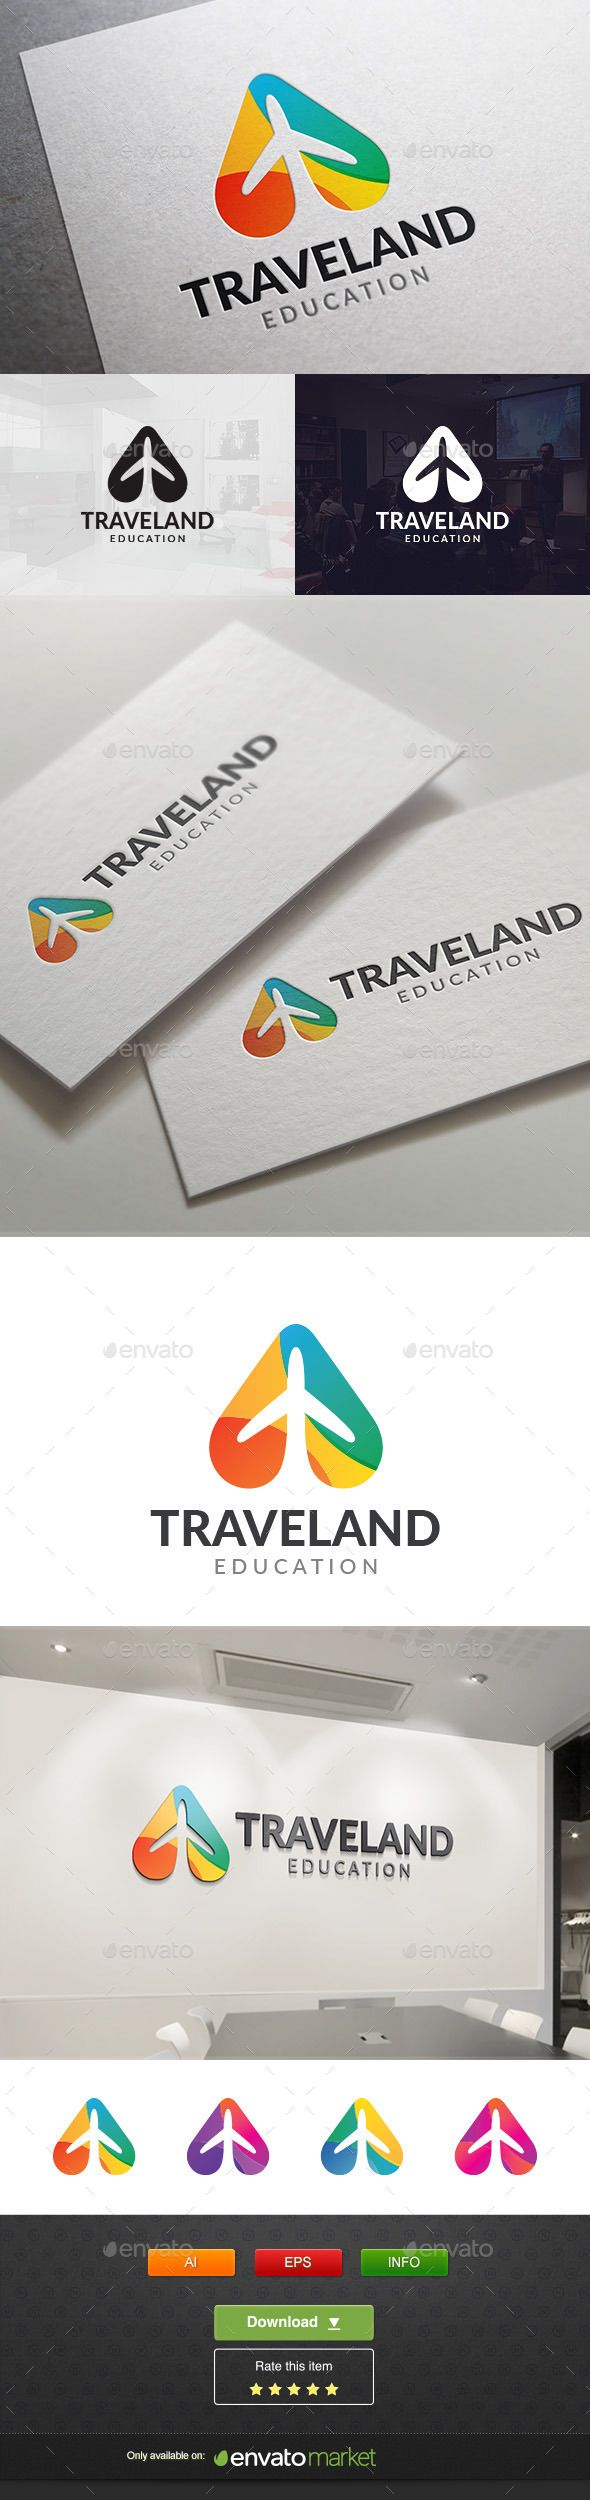 Travel Land Logo Template #design #logotype Download: http://graphicriver.net/item/travel-land/11765450?ref=ksioks